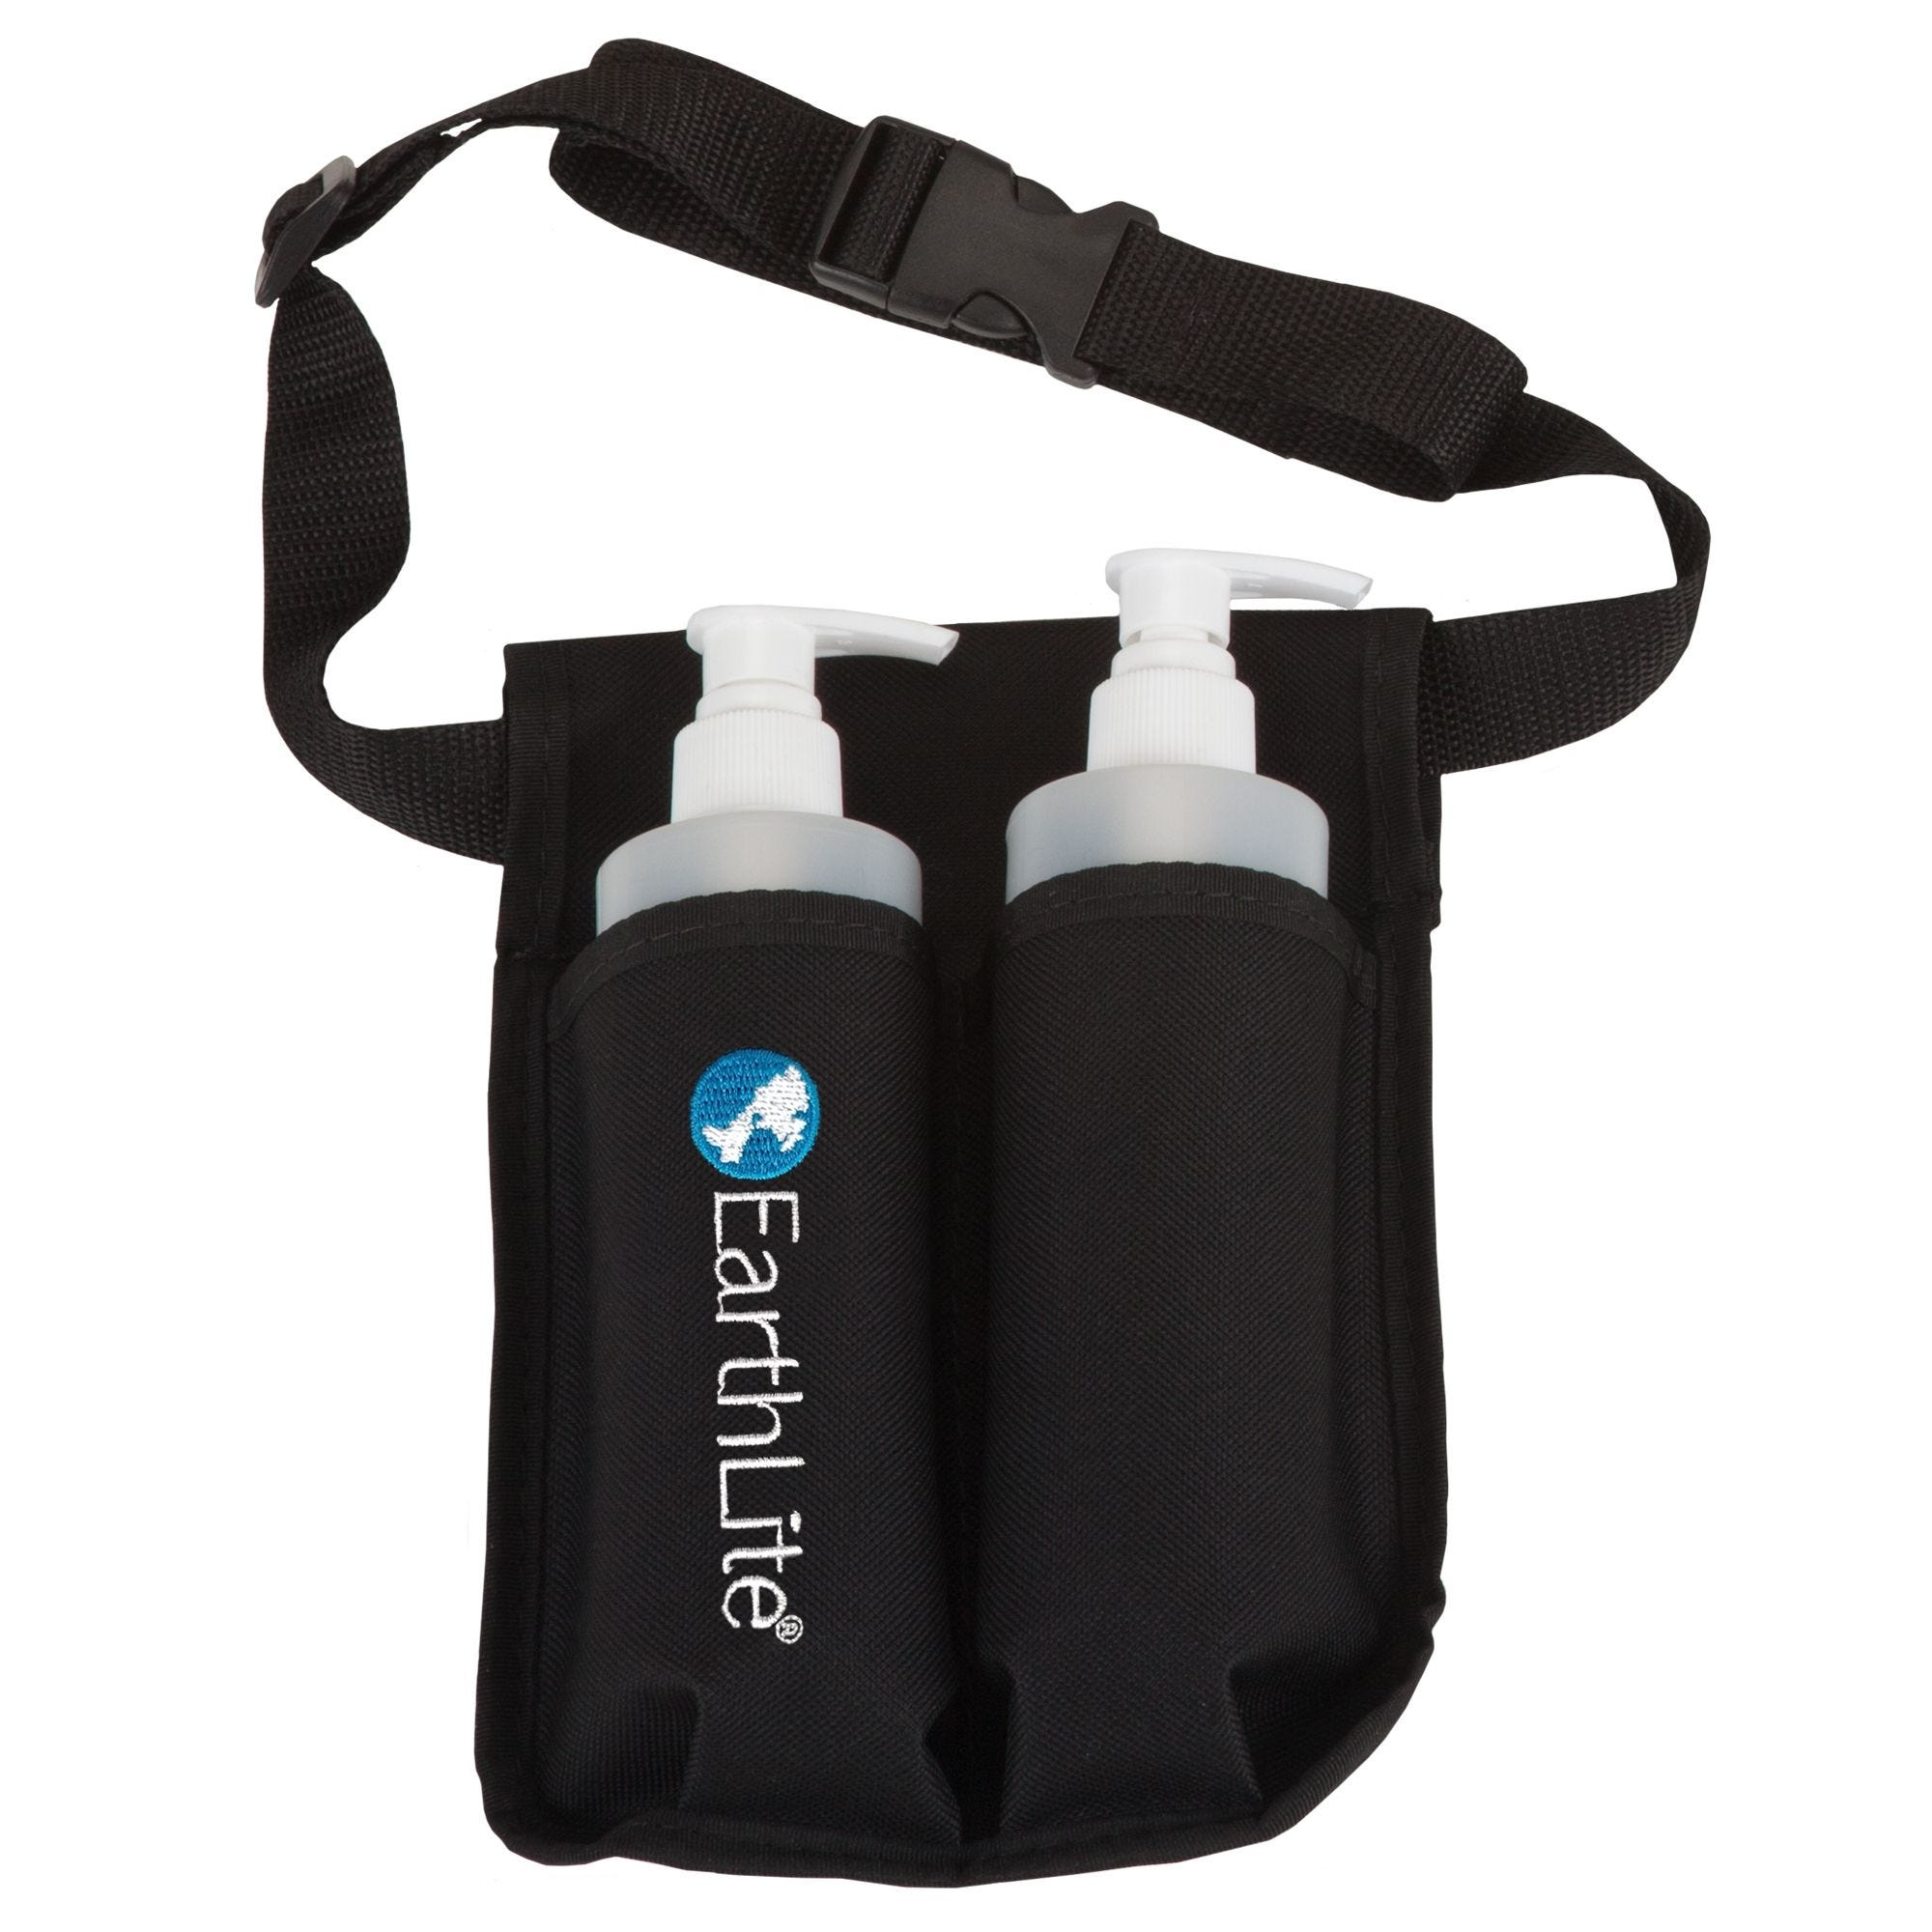 holster_double_with_bottles_1